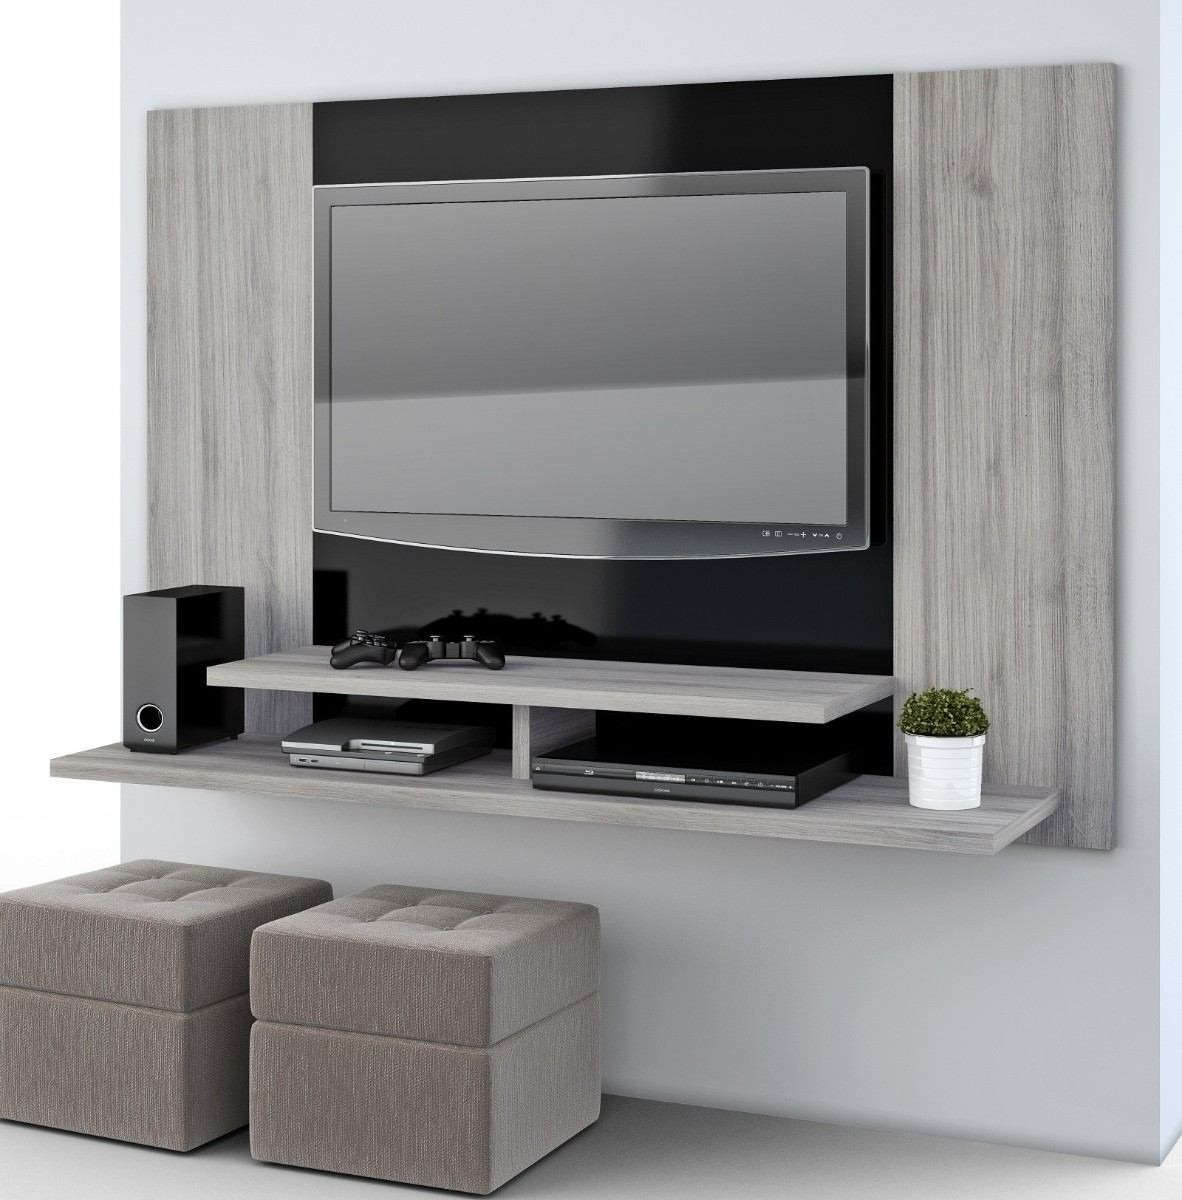 Mueble flotante para tv moderno ref manhatan for Muebles de tv baratos